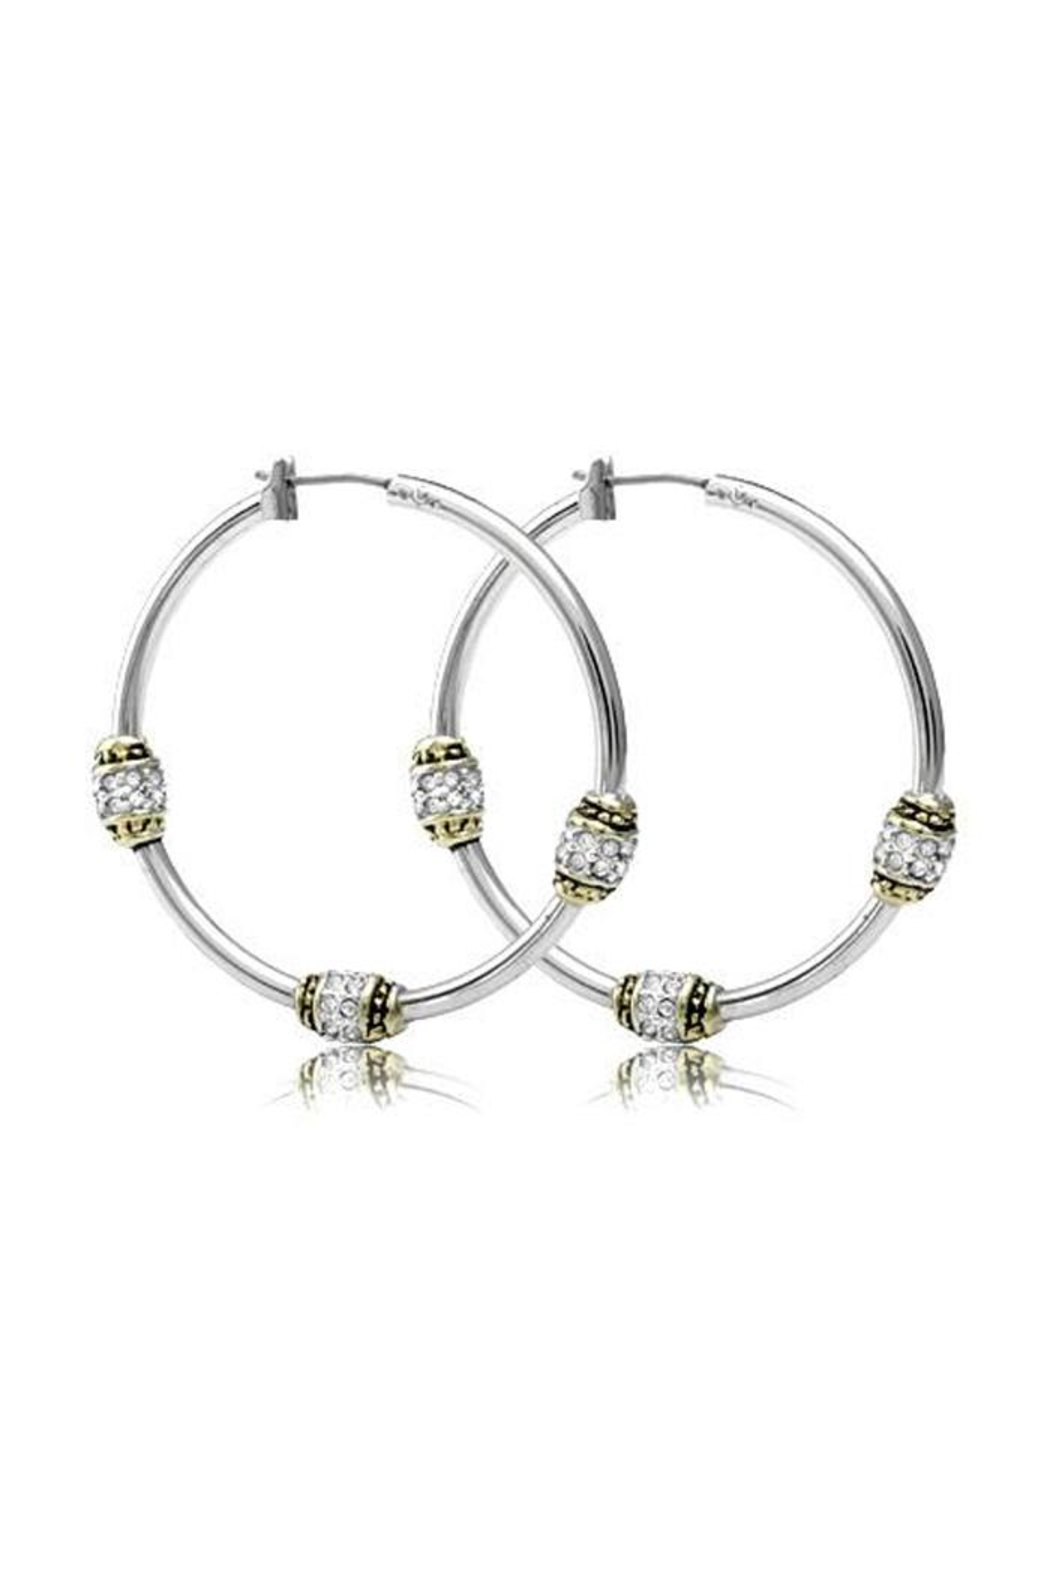 JOHN MEDEIROS Beaded-Pavé Triple-Bead-Hoop Earrings - Front Cropped Image